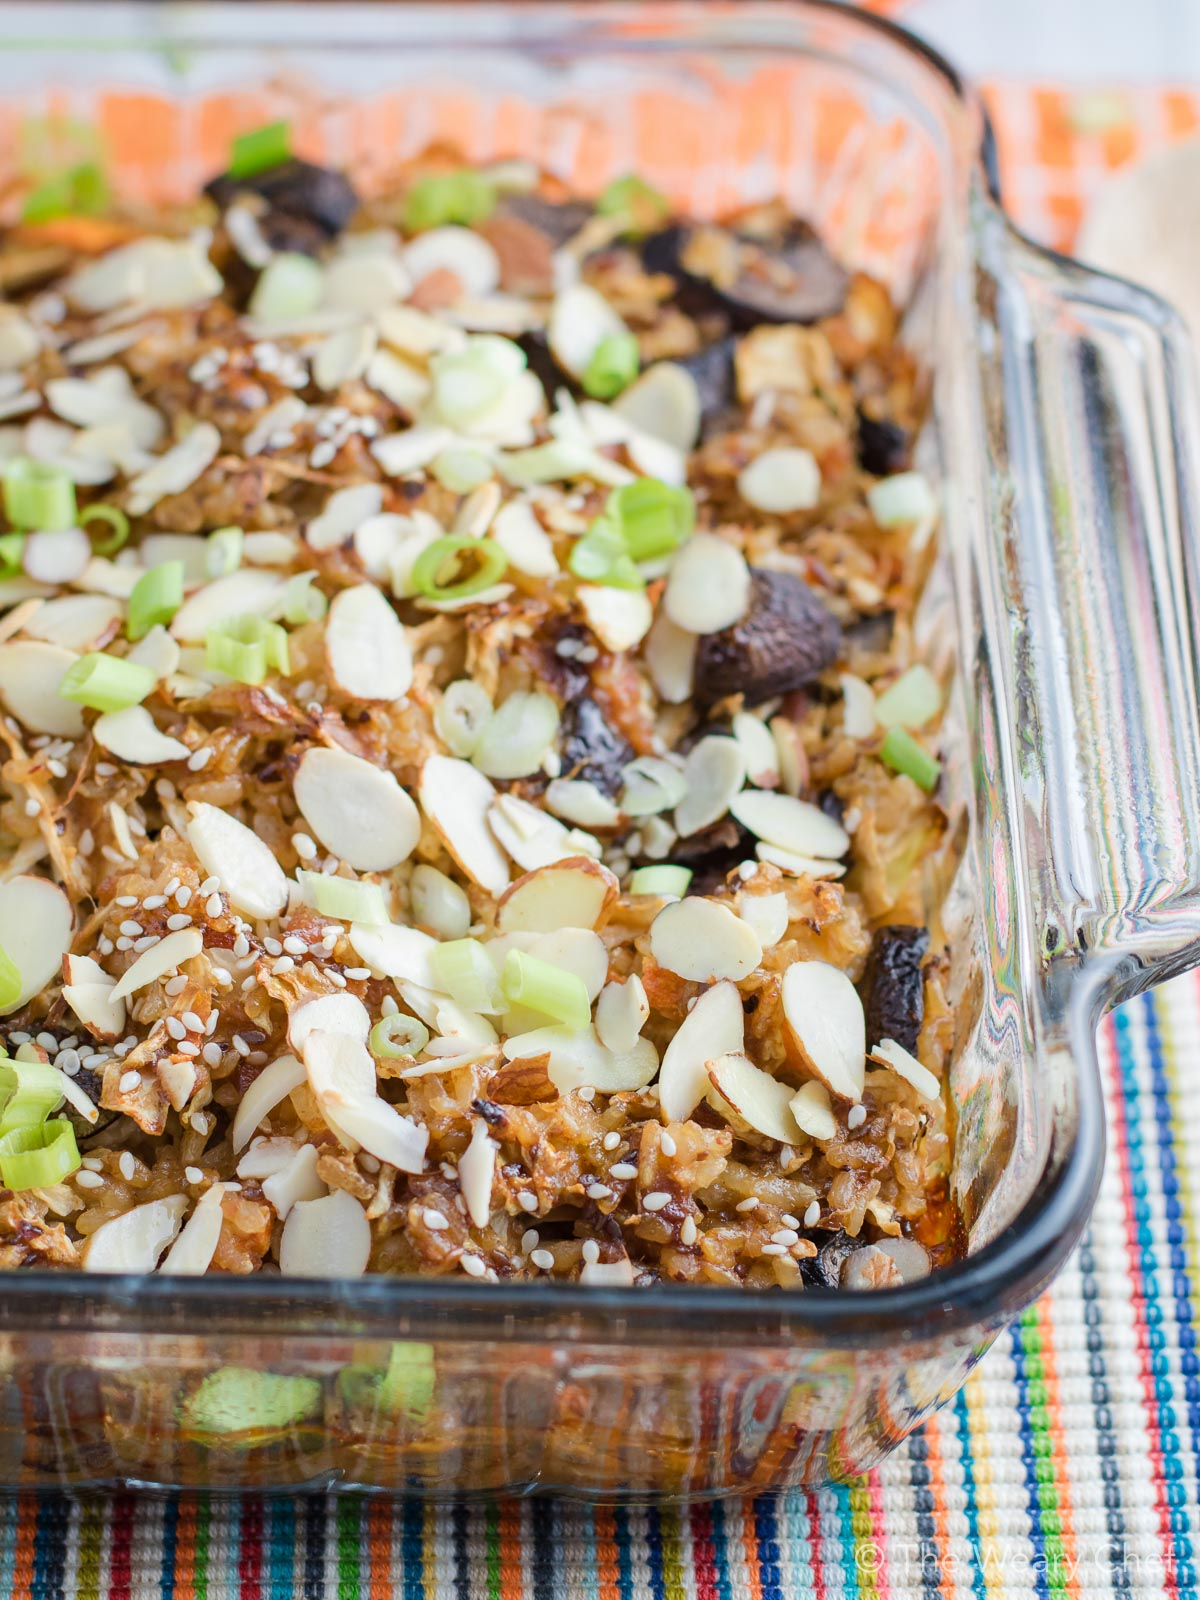 Forget boring old tuna casserole, and try this Teriyaki Tilapia Casserole instead!